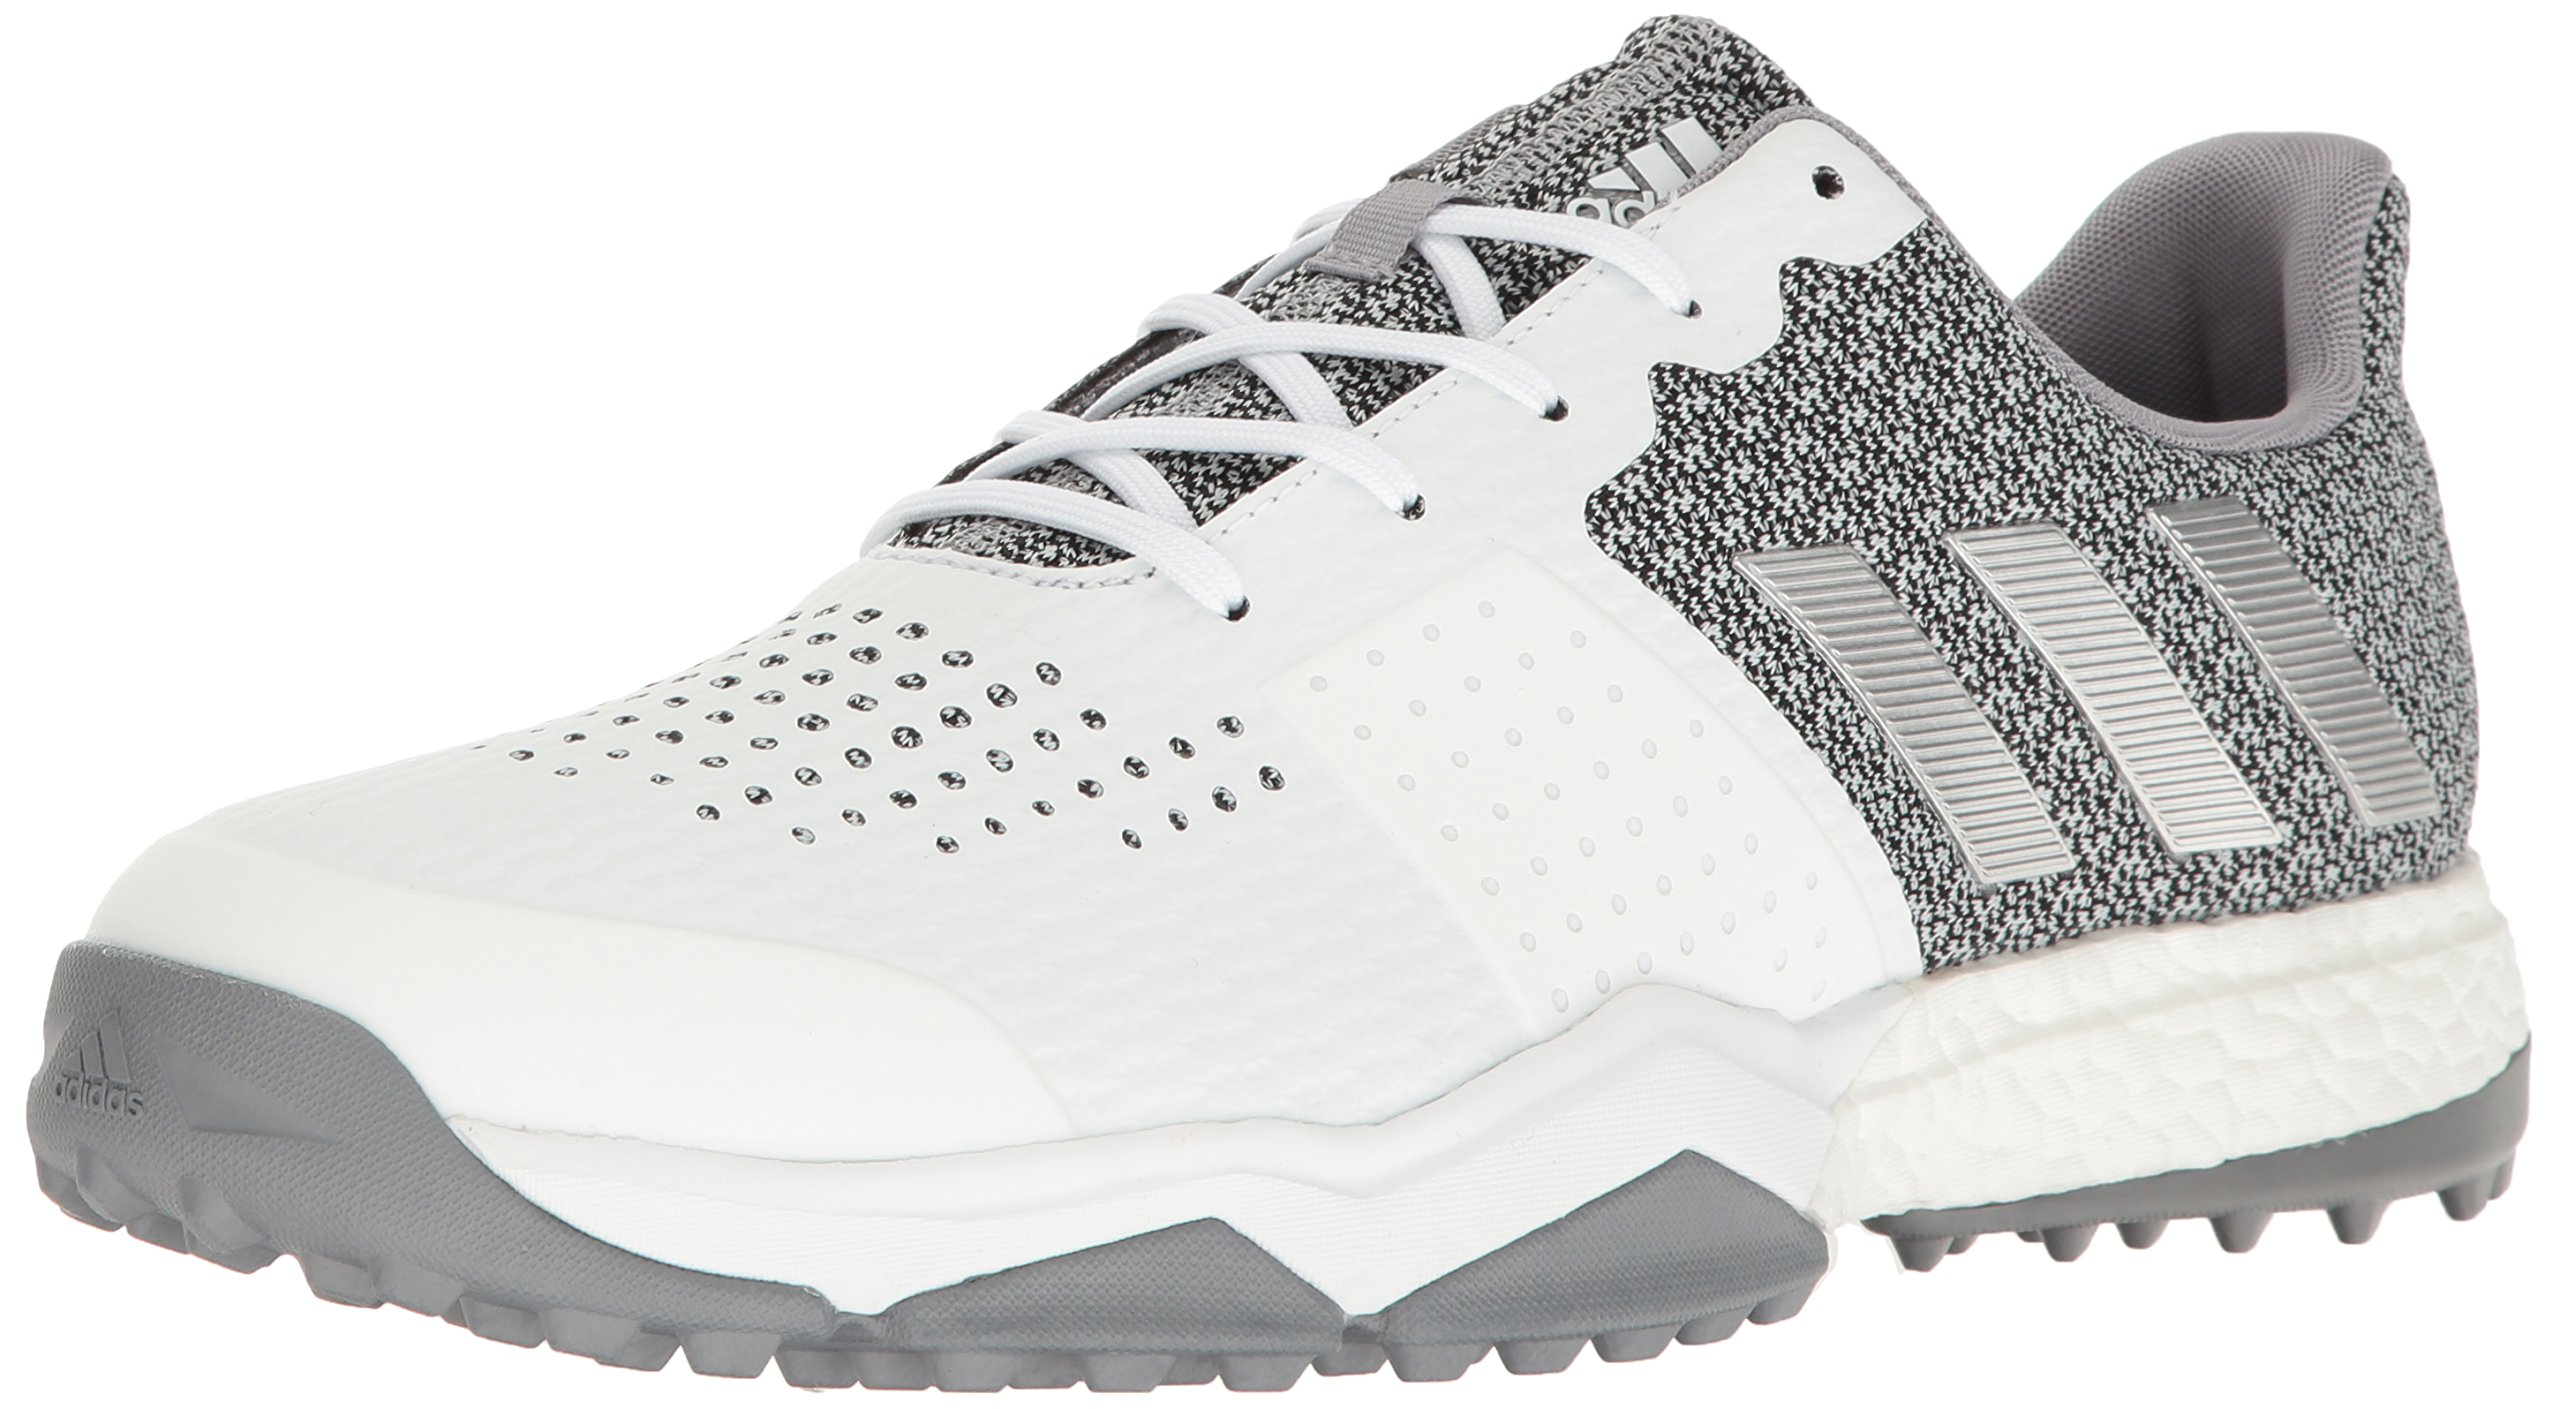 adidas Men's Adipower S Boost 3 Golf Shoe, White - 12 D(M) US by adidas